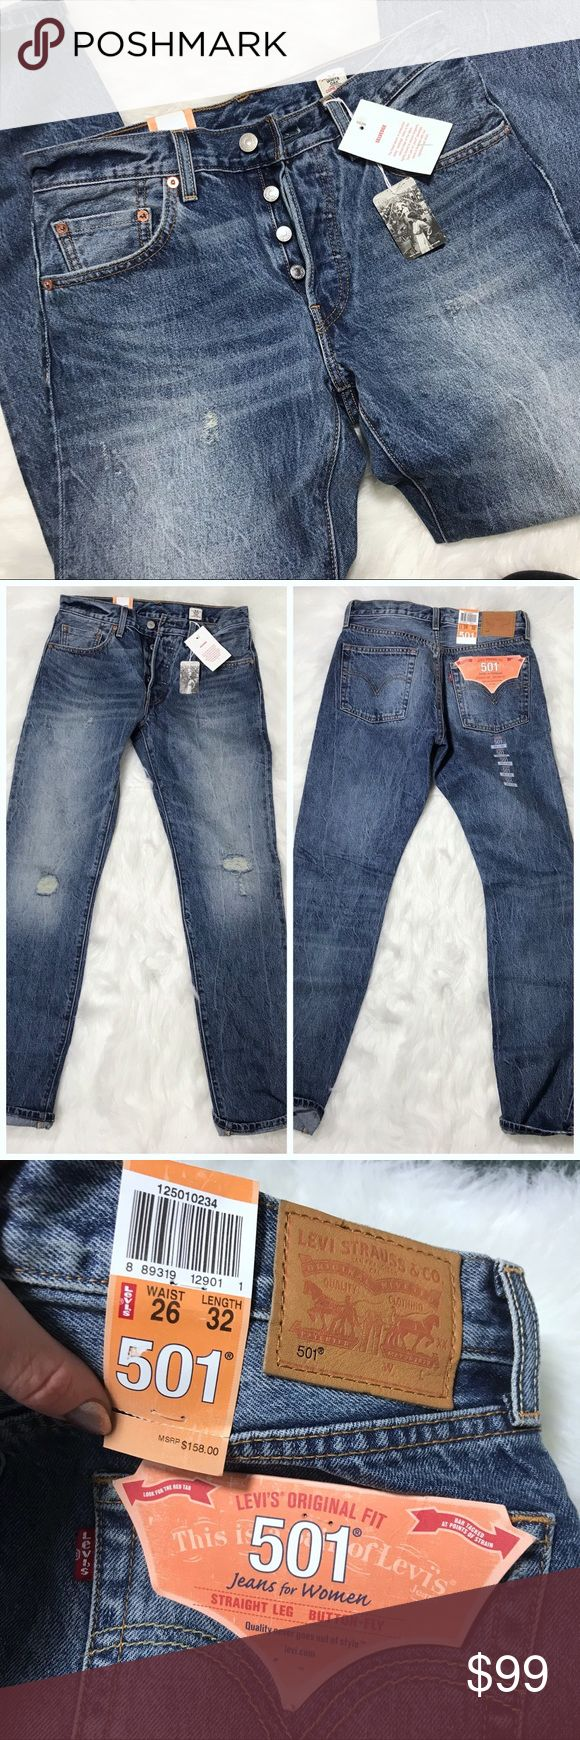 """NWT Levi 501 Selvedge Jeans 26 x 32 Beautiful new with tags Levi's 501 original fit """"mom jeans"""" in the wash """"light sky"""". Distressed selvedge denim from the white oak mill. I recommend sizing down for a more classic fit unless you're looking for boyfriend fit! This style was sold at Anthropologie and Free people. MSRP $158. Reasonable offers will be considered.   Please feel free to ask questions!  Bundle for 10% off, ships same or next day. Brand new item from a clean, cat friendly home. NO…"""